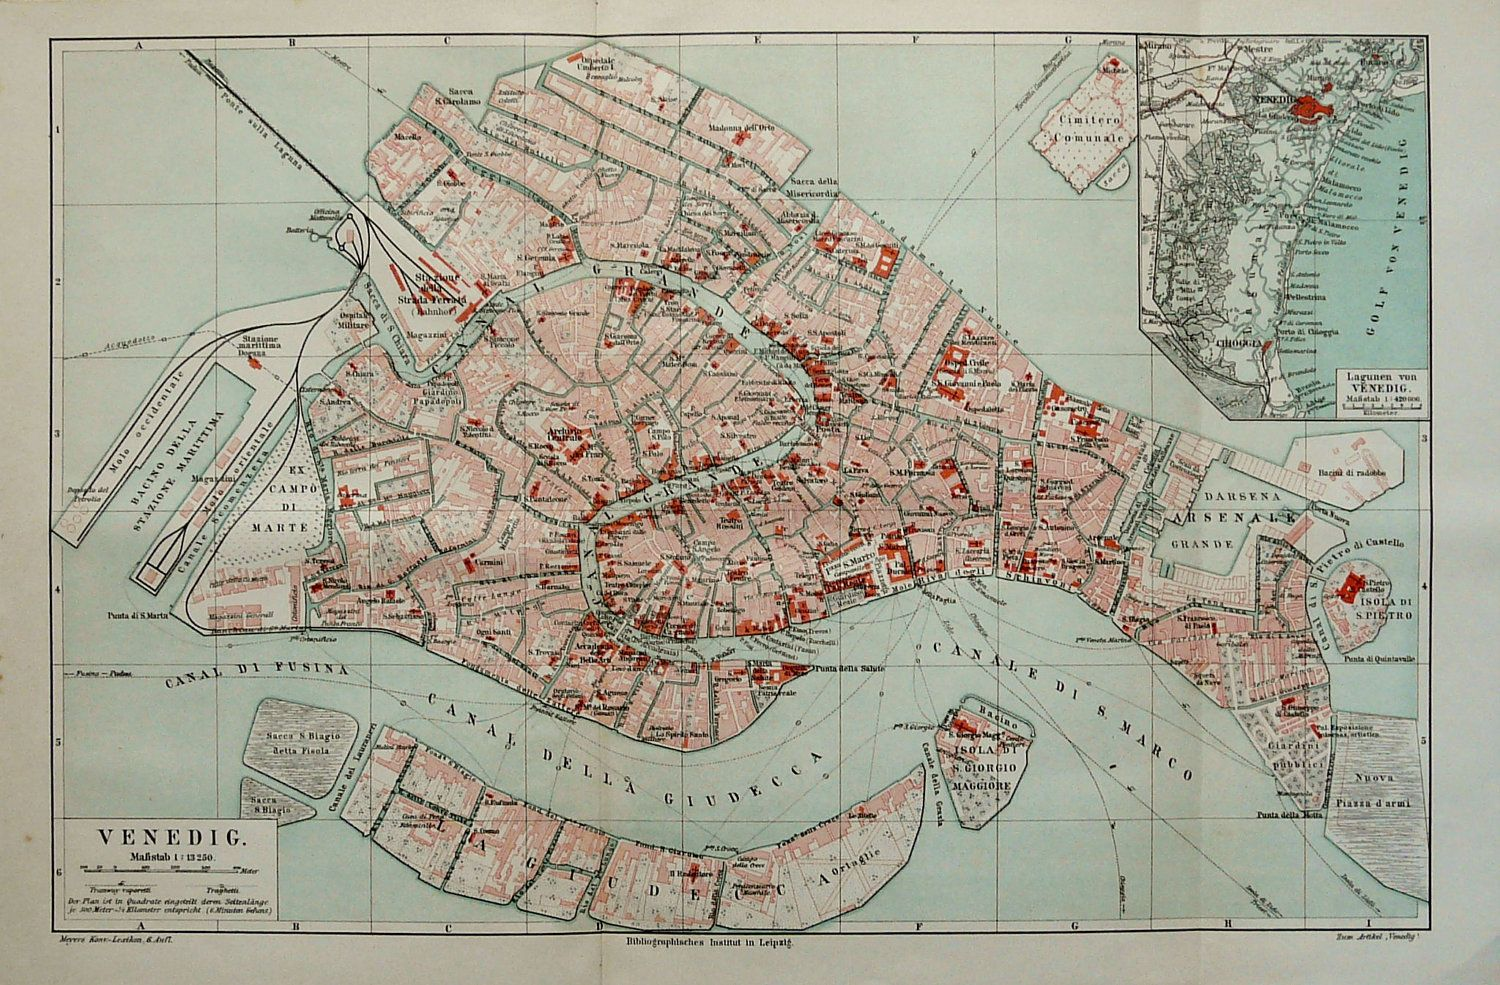 VINTAGE MAPS VENICE - Google Search